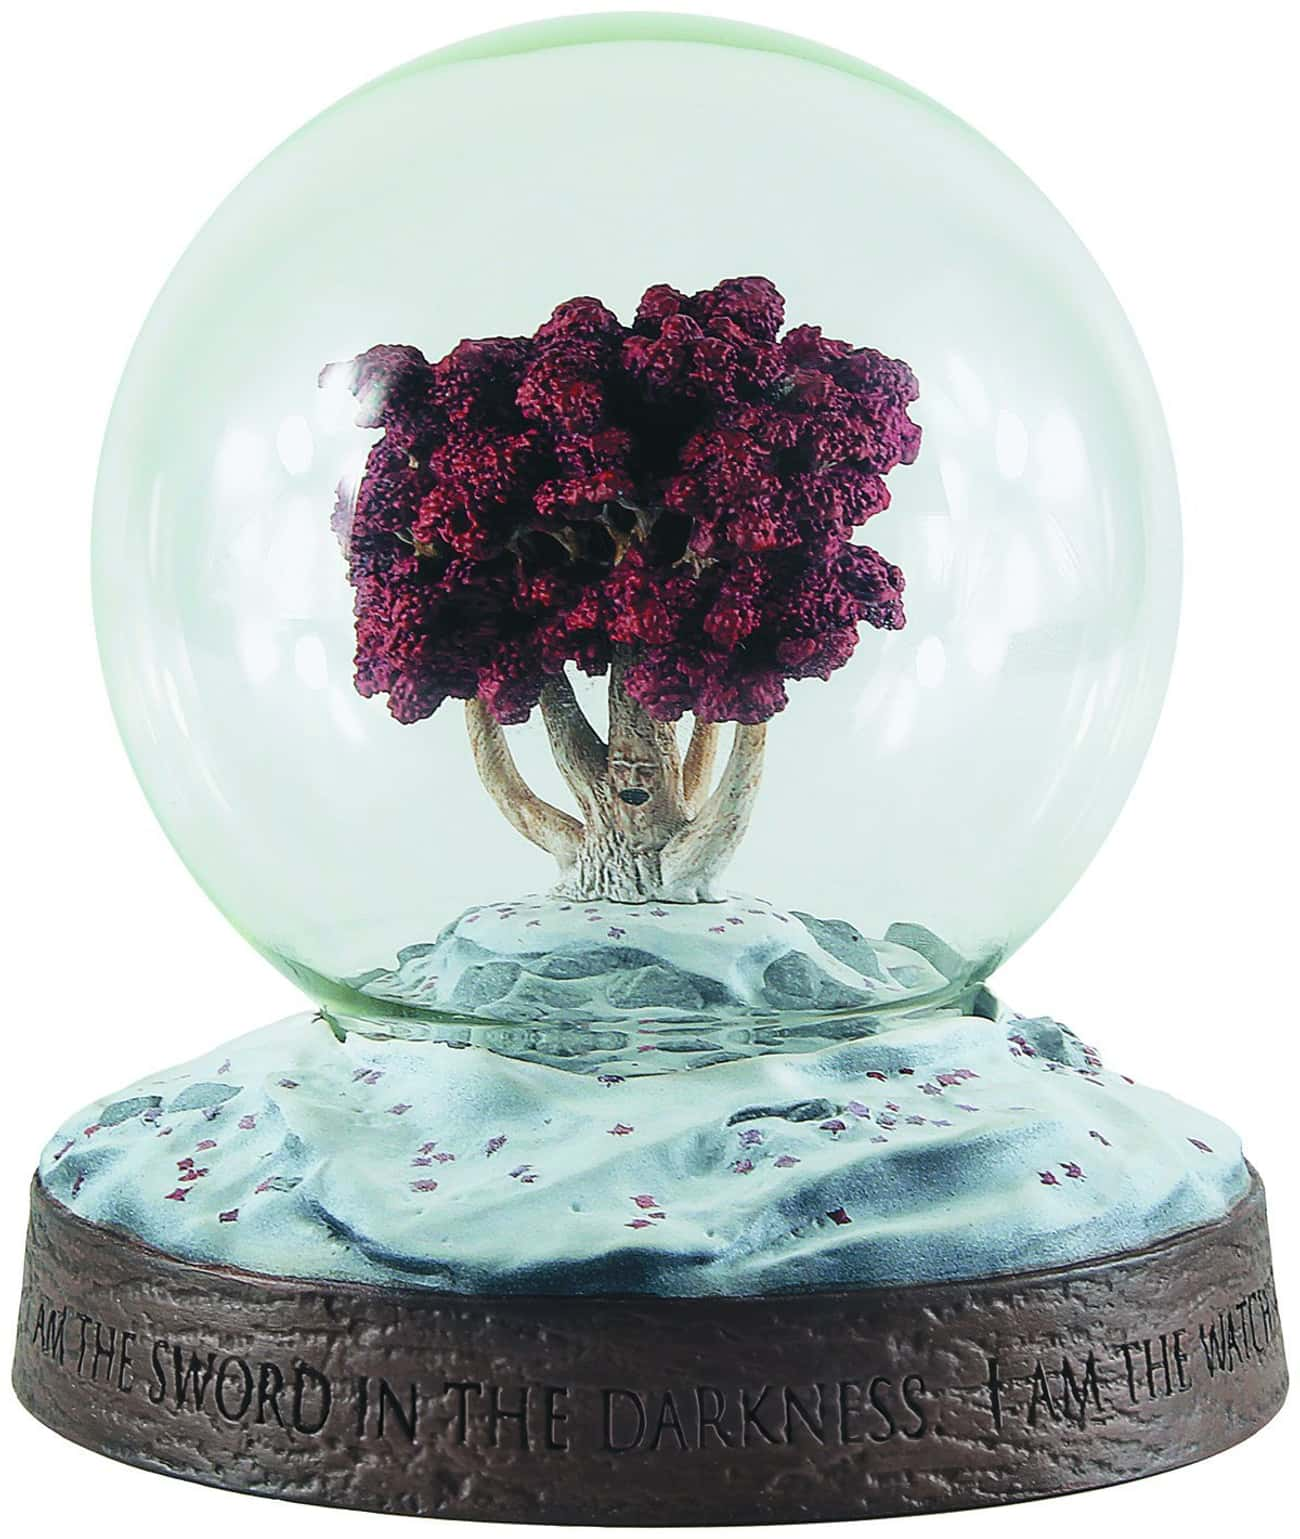 Weirwood Snow Globe is listed (or ranked) 4 on the list Game of Thrones Gifts for the Fan Who Has It All